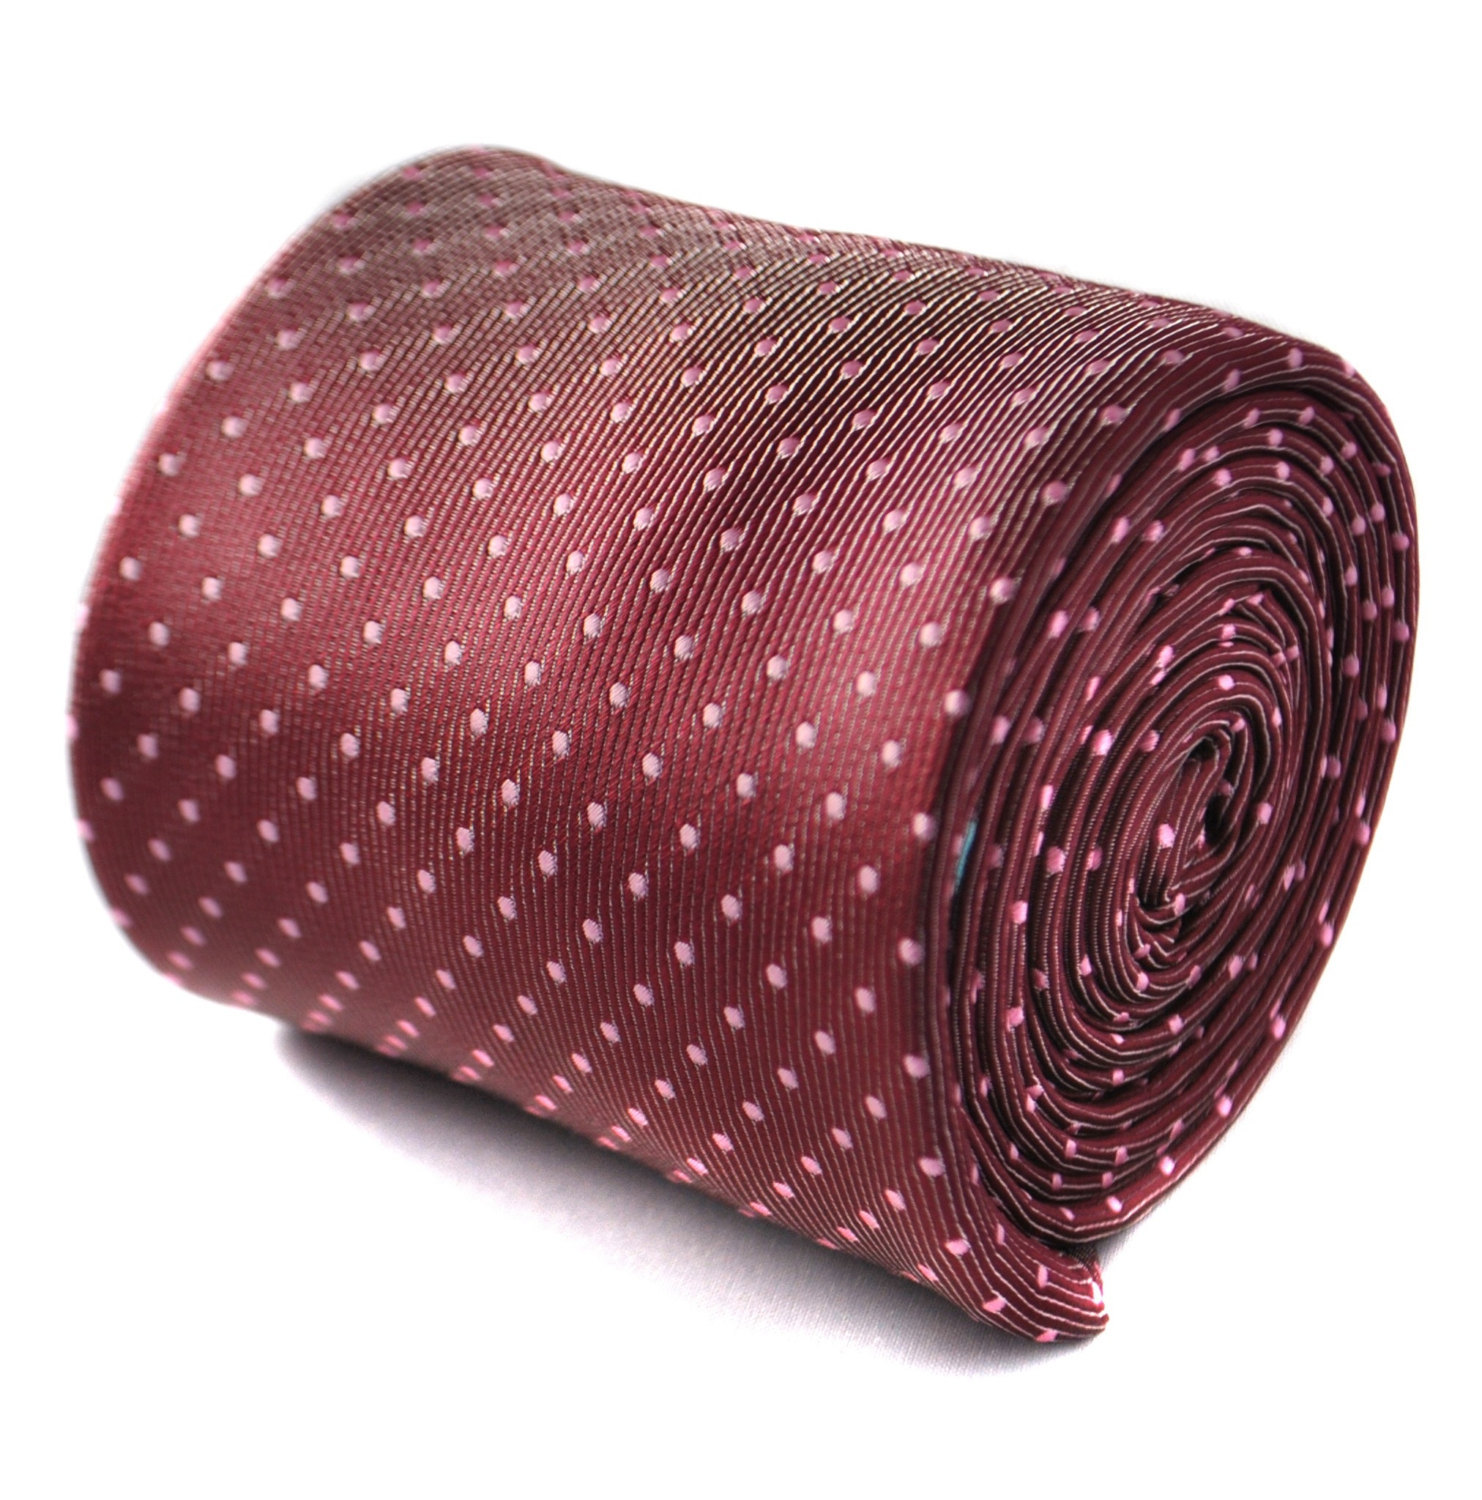 maroon and pin spot tie with floral design to the rear by Frederick Thomas FT163